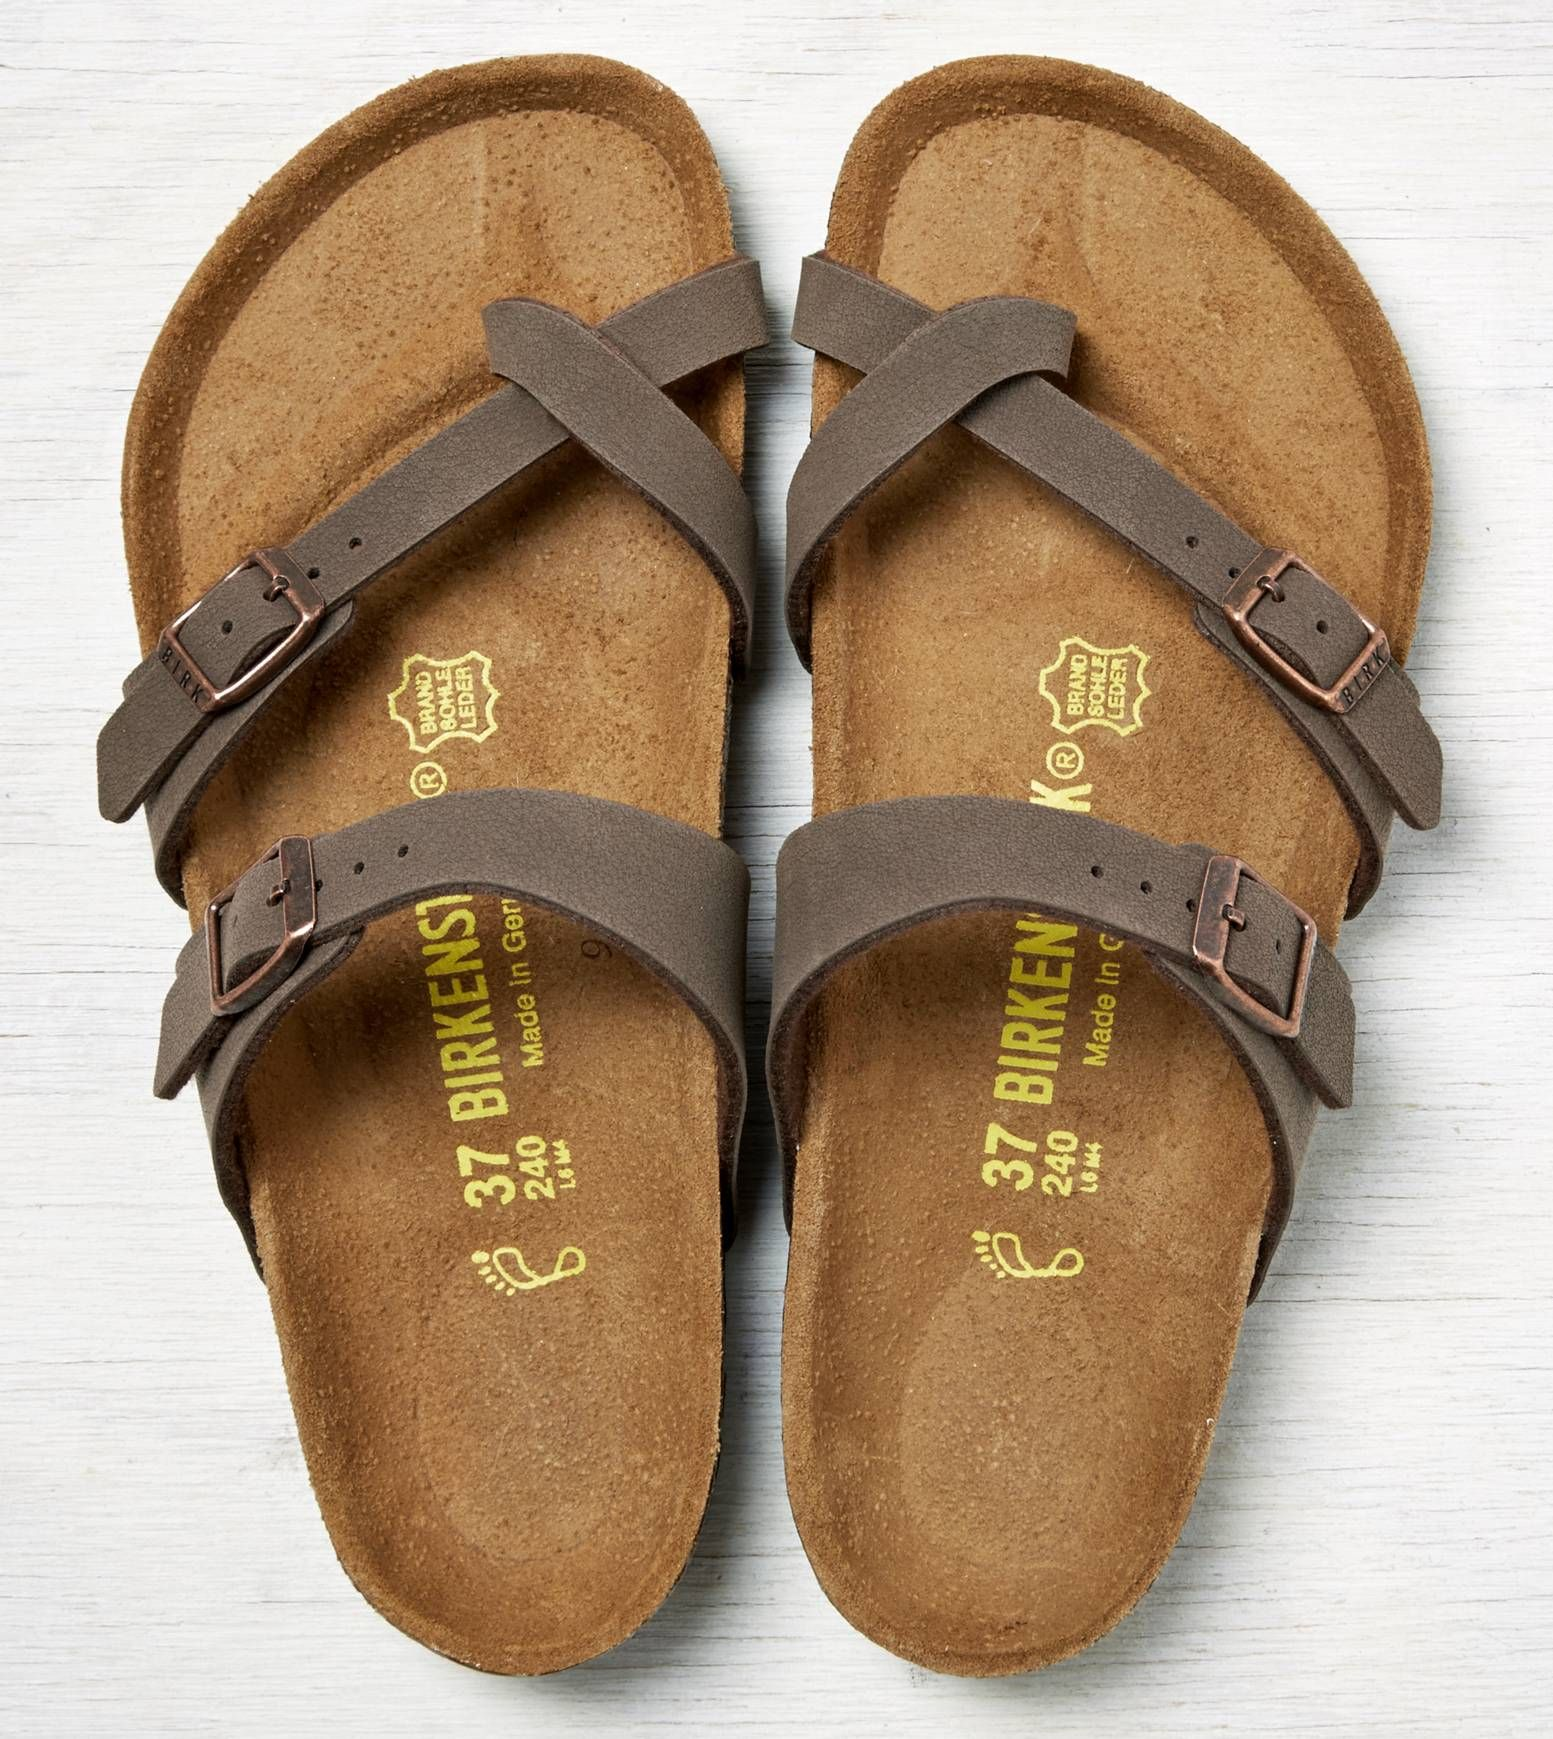 Birkenstock Mayari In 2018 I Would Wear Pinterest Shoes Tendencies Sandals Footbed 2 Strap Brown 41